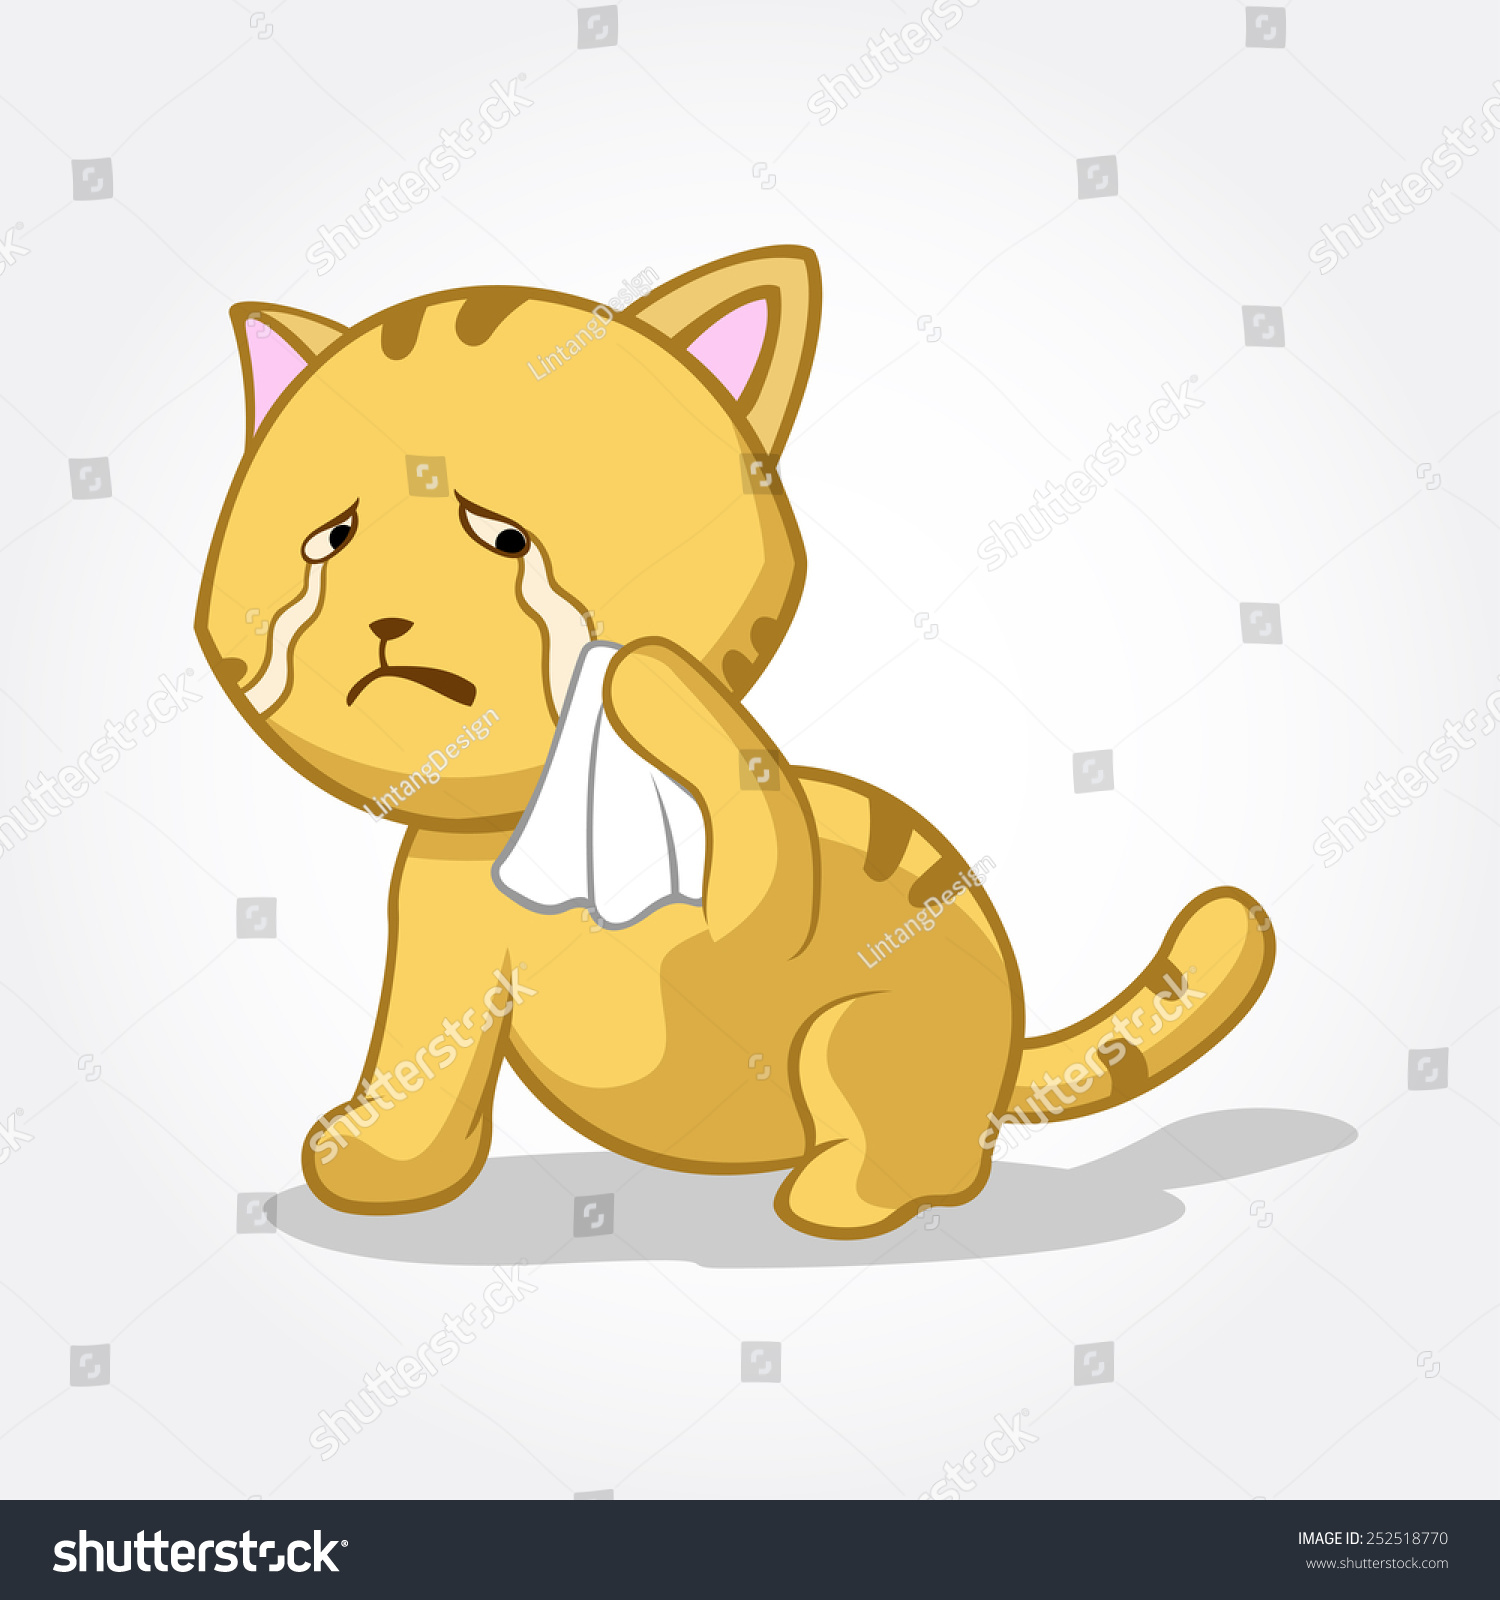 Crying Cat Cartoon This is a cat cartoon vector illustration, this cat ...